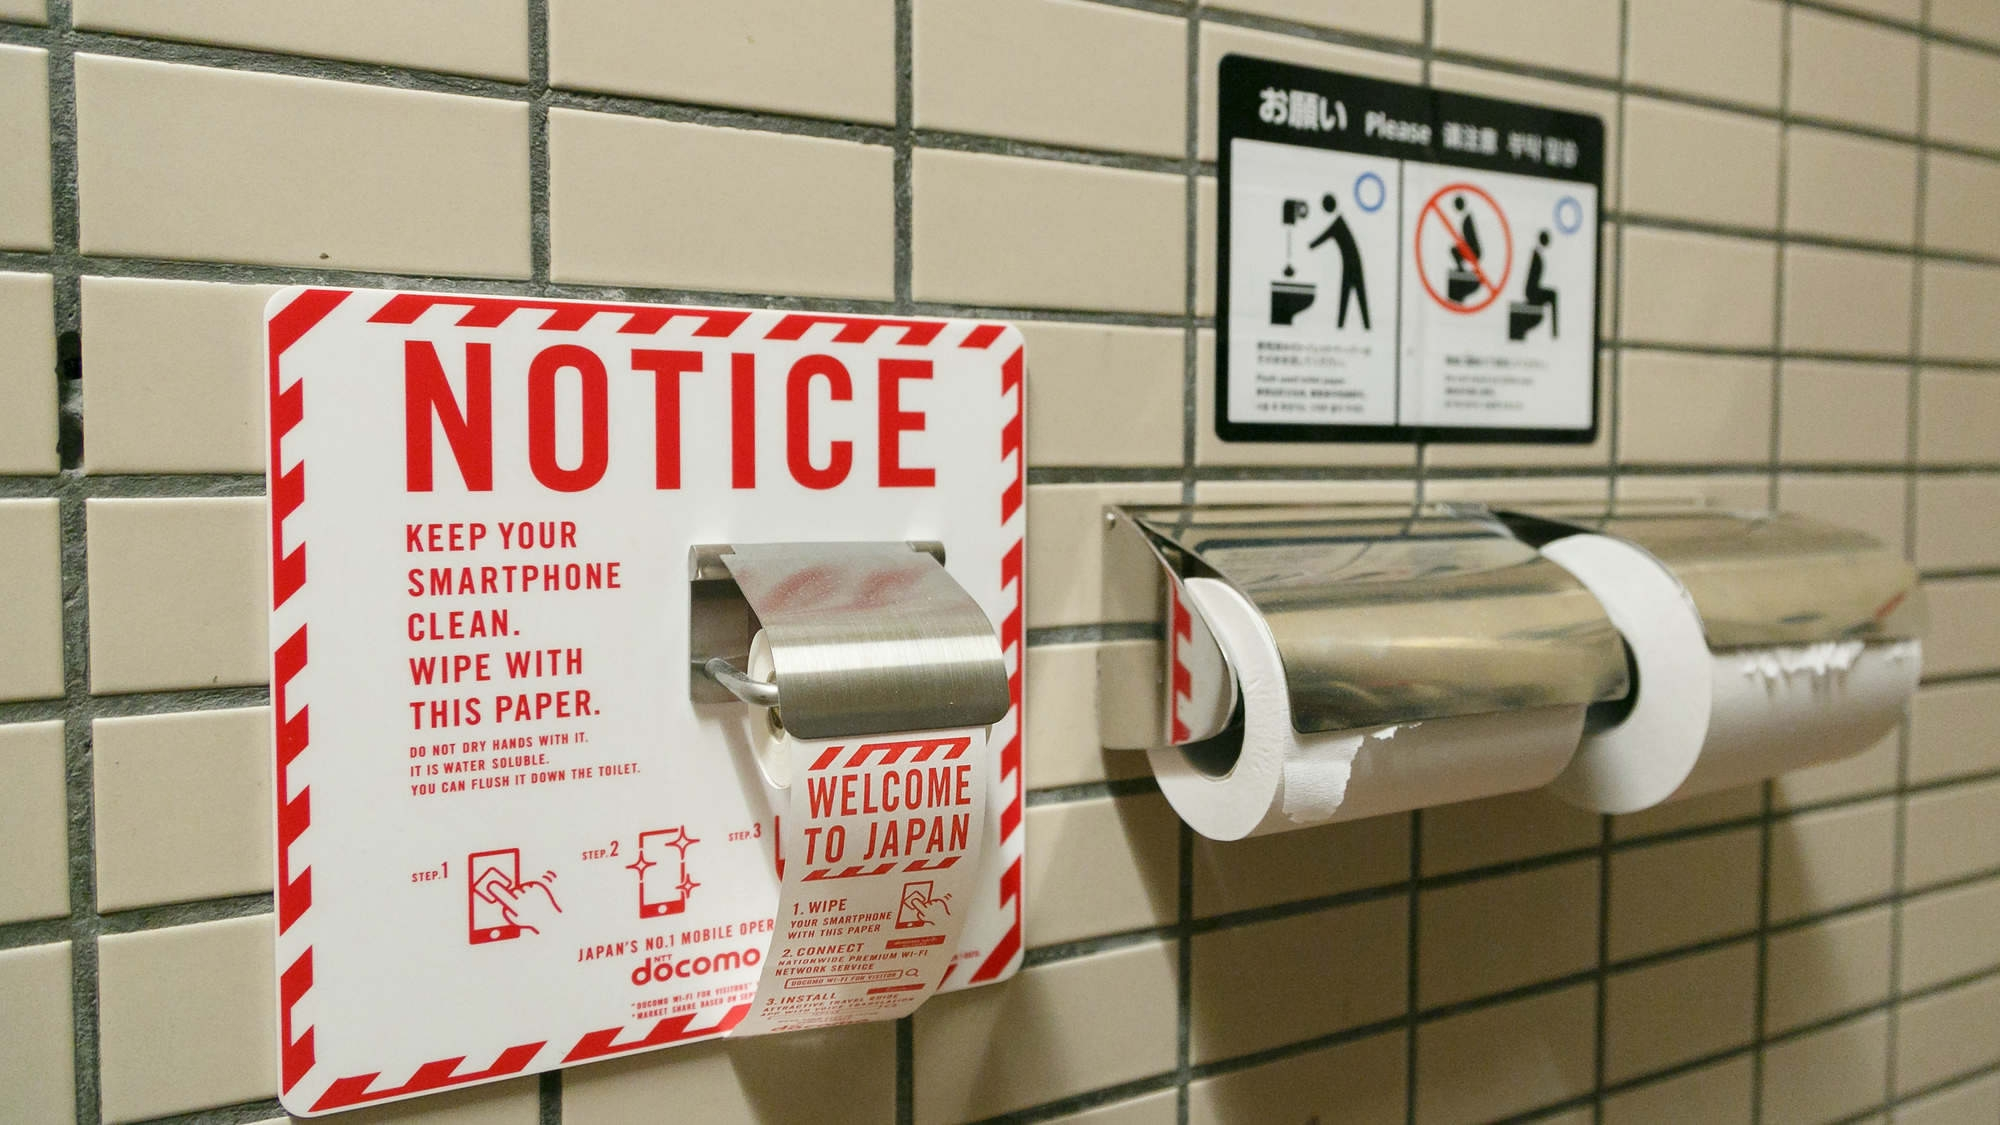 Japan introduces \'phone paper\' to airport toilets - CGTN